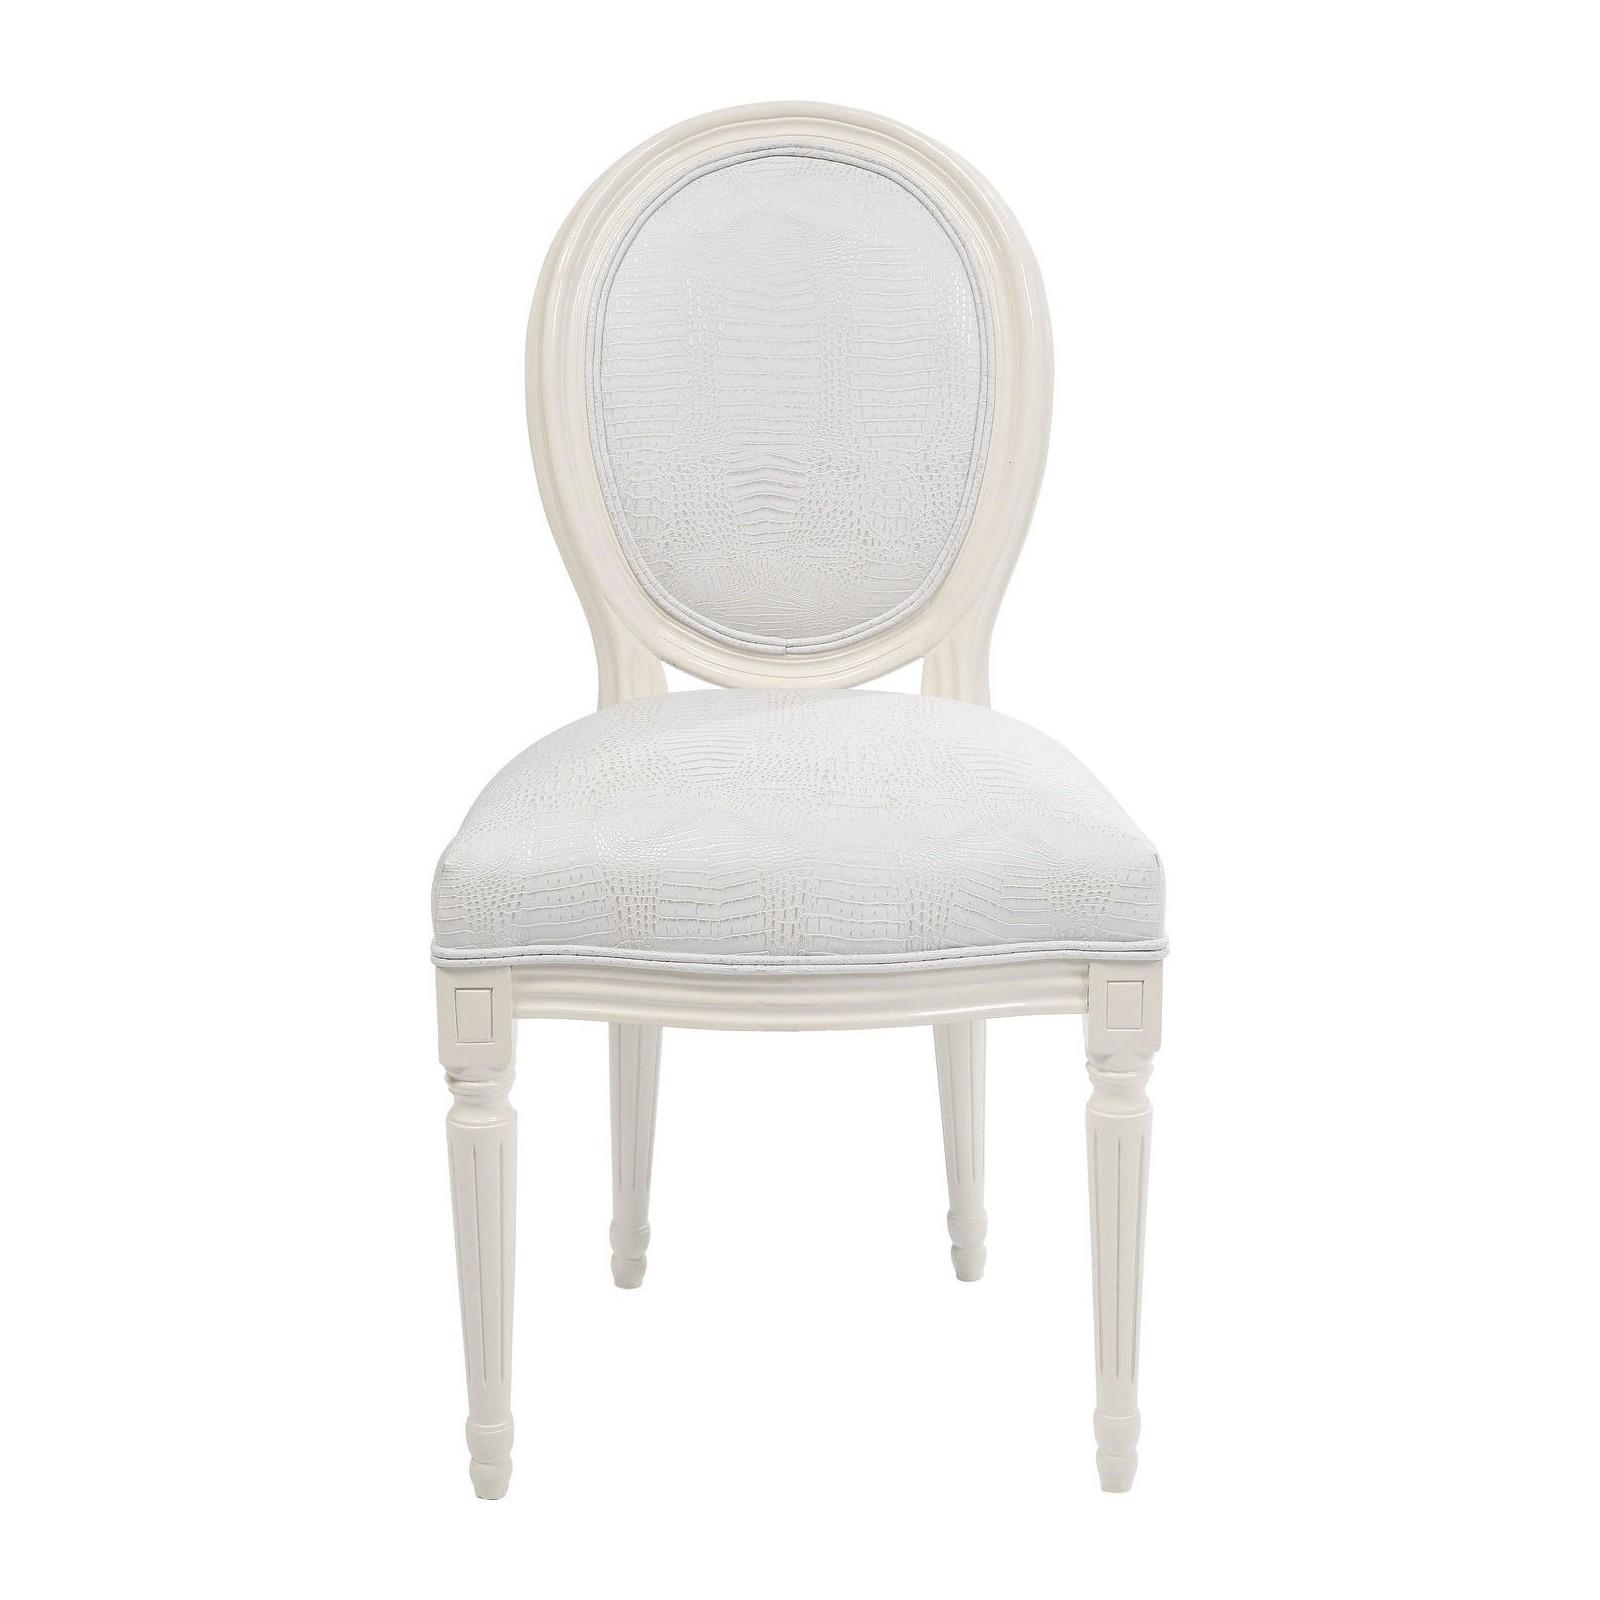 Chaise baroque blanche louis kare design for Chaise blanches